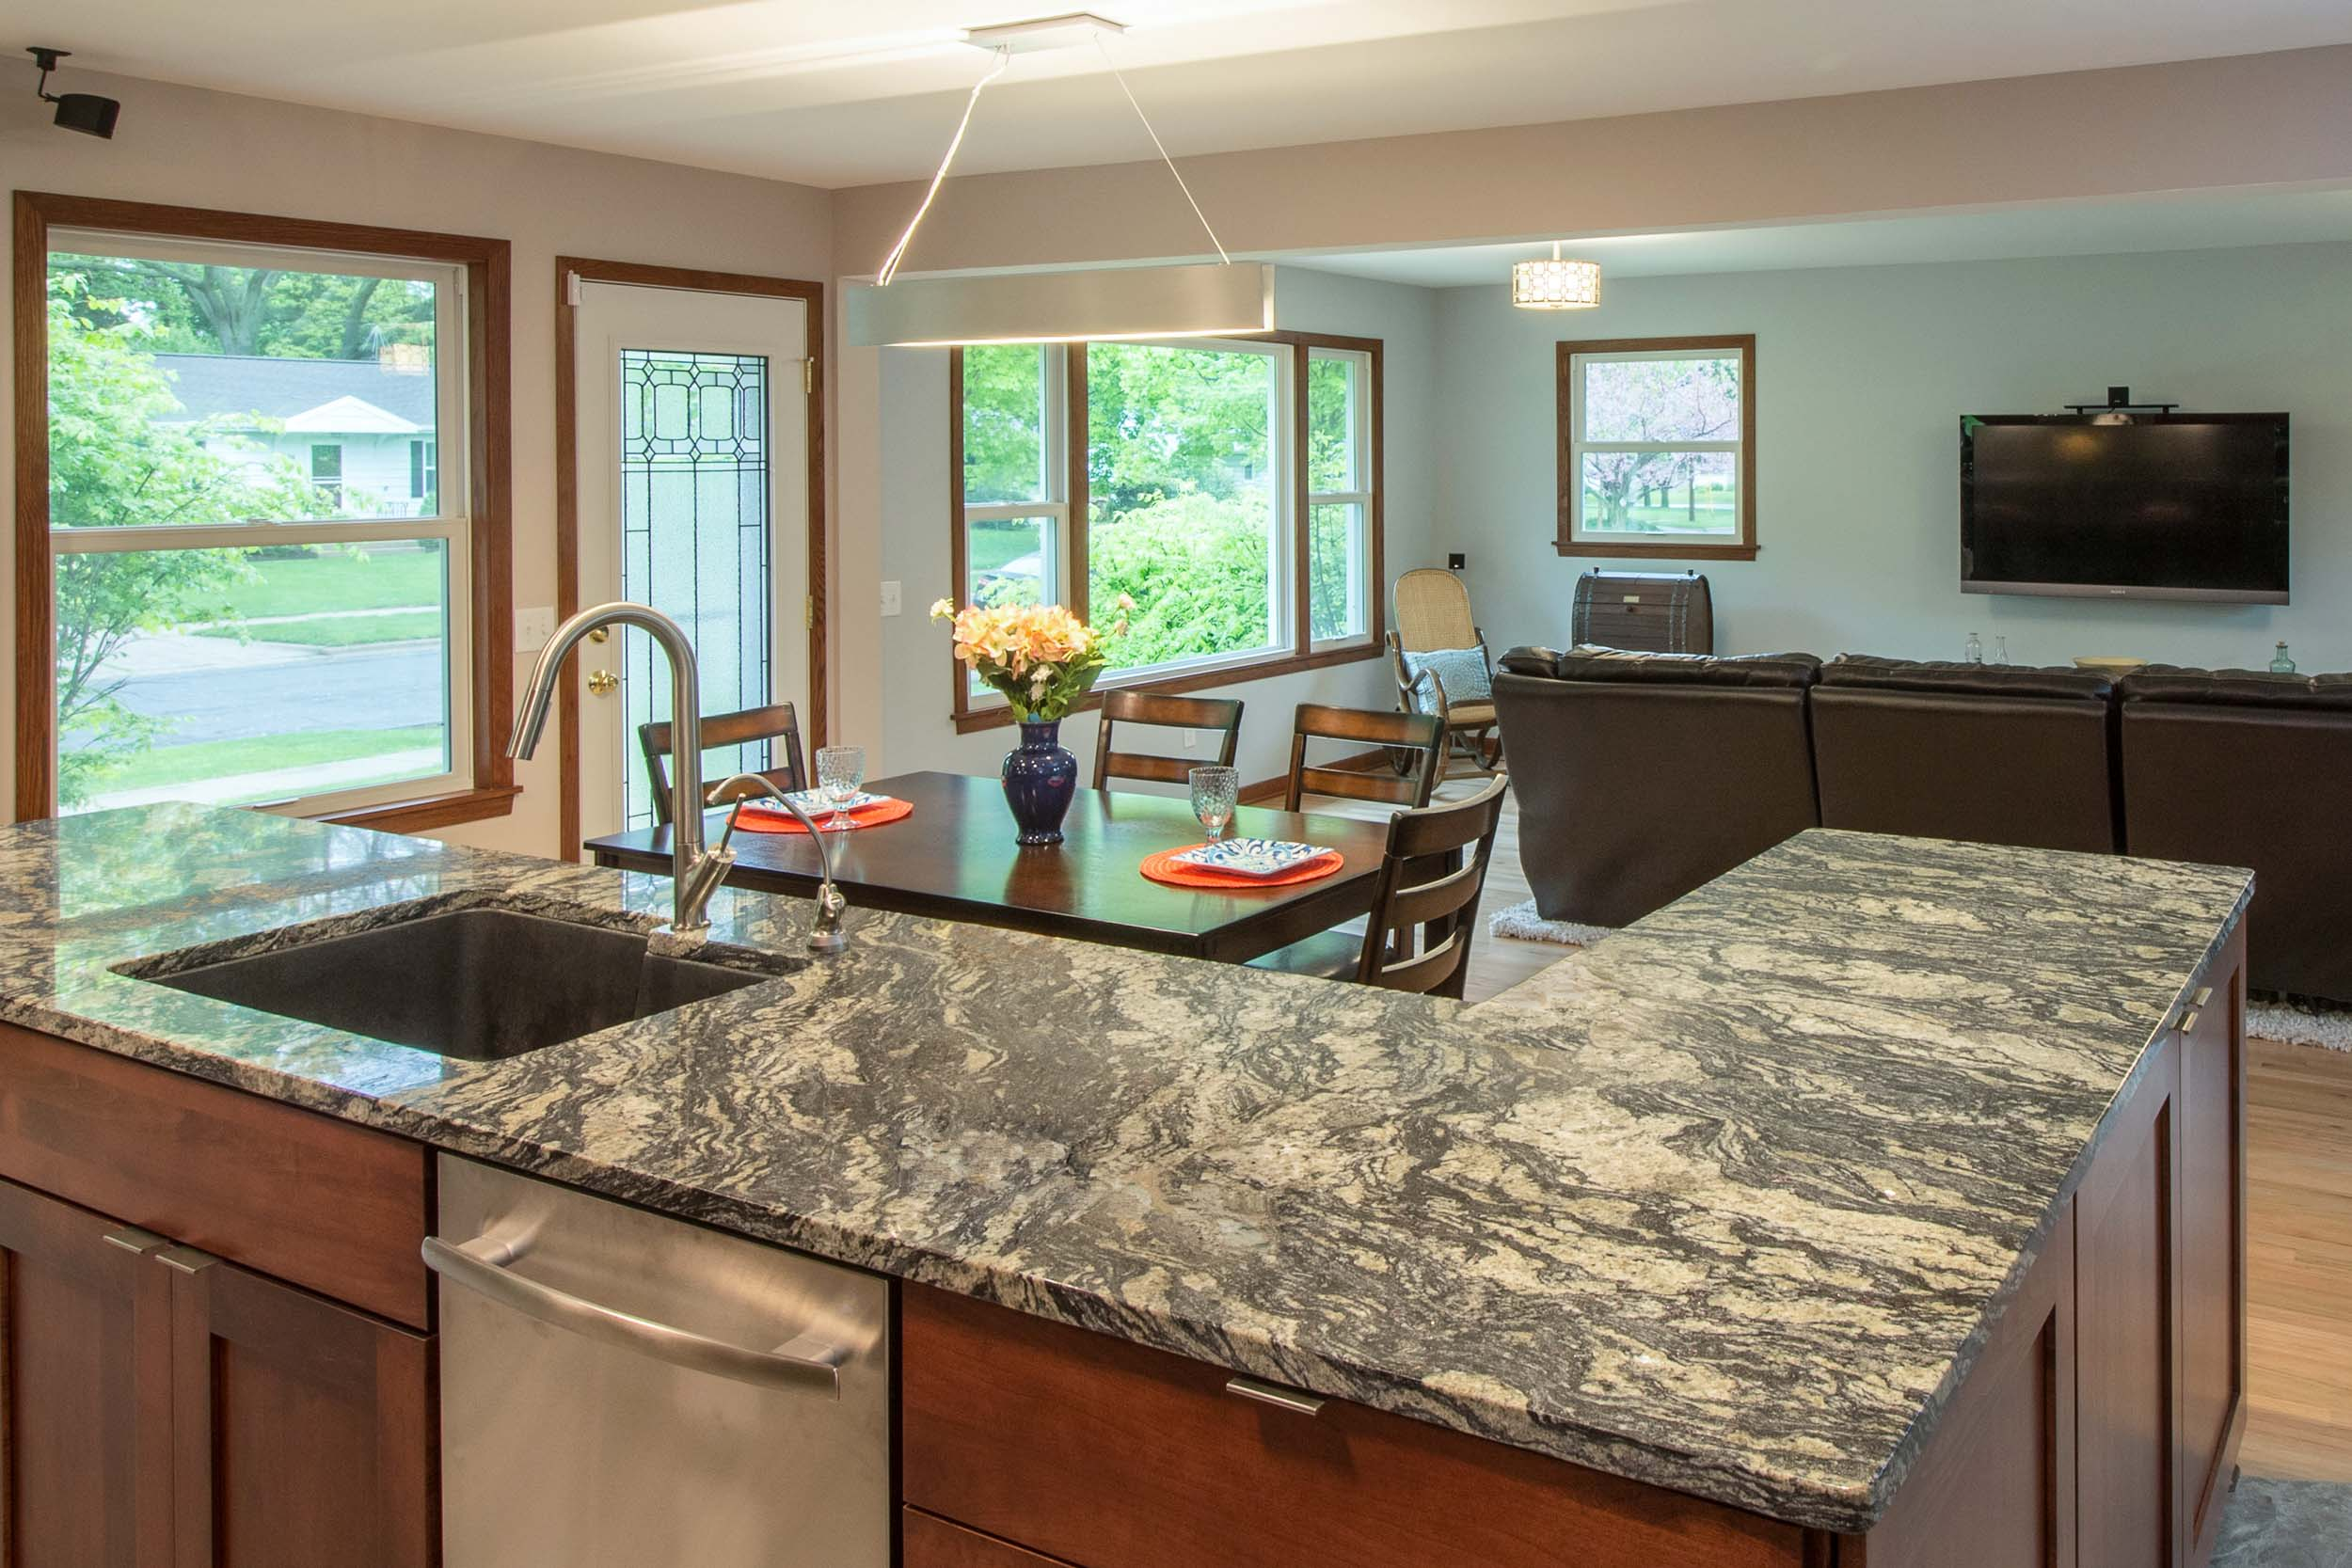 Open concept Kitchen Design-Build Remodeling in Midvale Heights, Madison WI